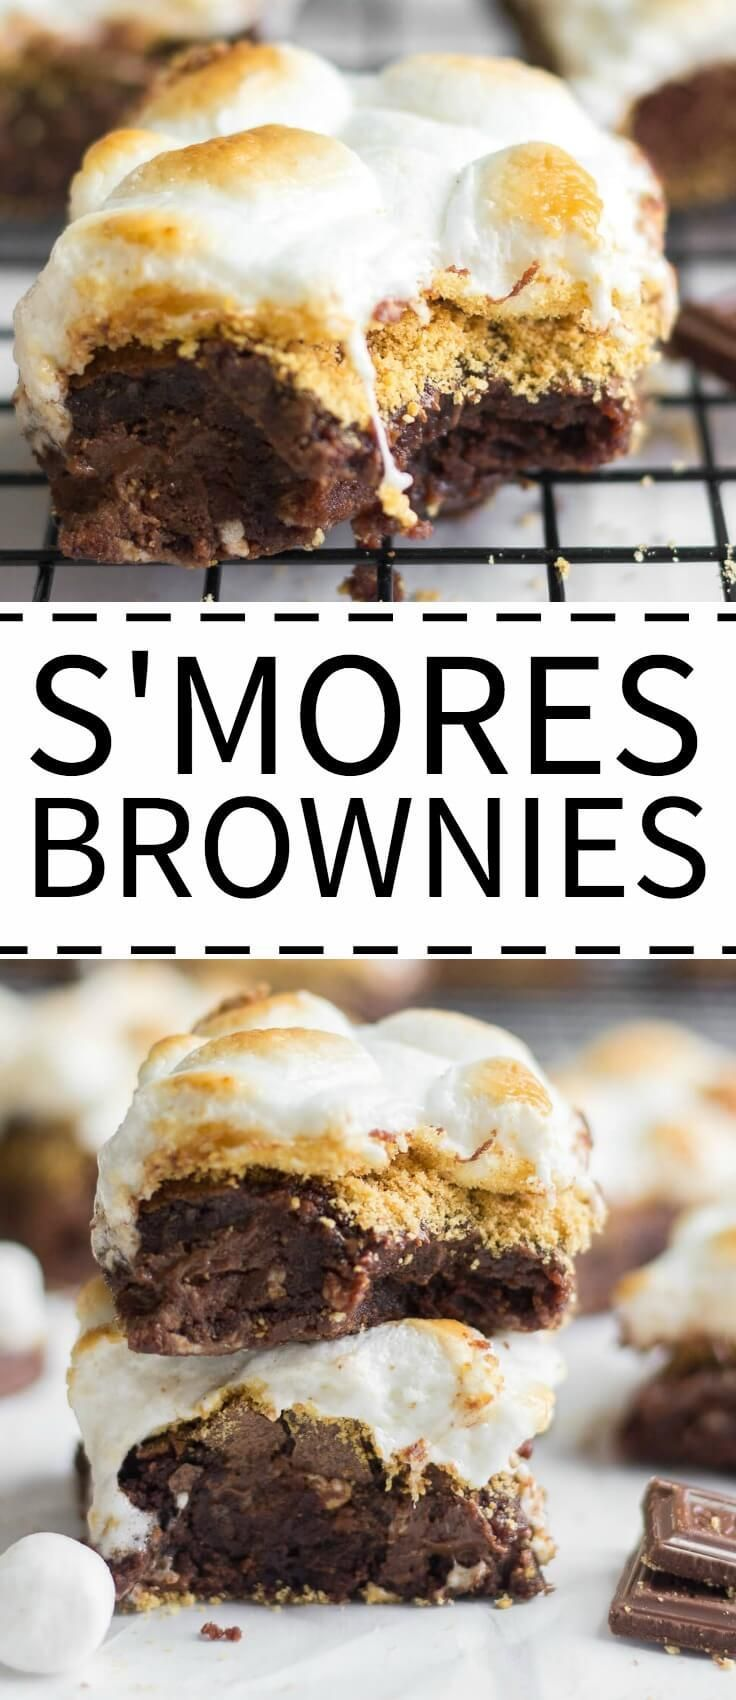 You will love these easy s'mores brownies! These thick and chewy s'mores brownies are the best way to kick off your summer festivities. The brownies are layered with Hershey's chocolate and graham cracker crumbs and topped with toasted marshmallows. Make this easy summer dessert for all your summer parties!